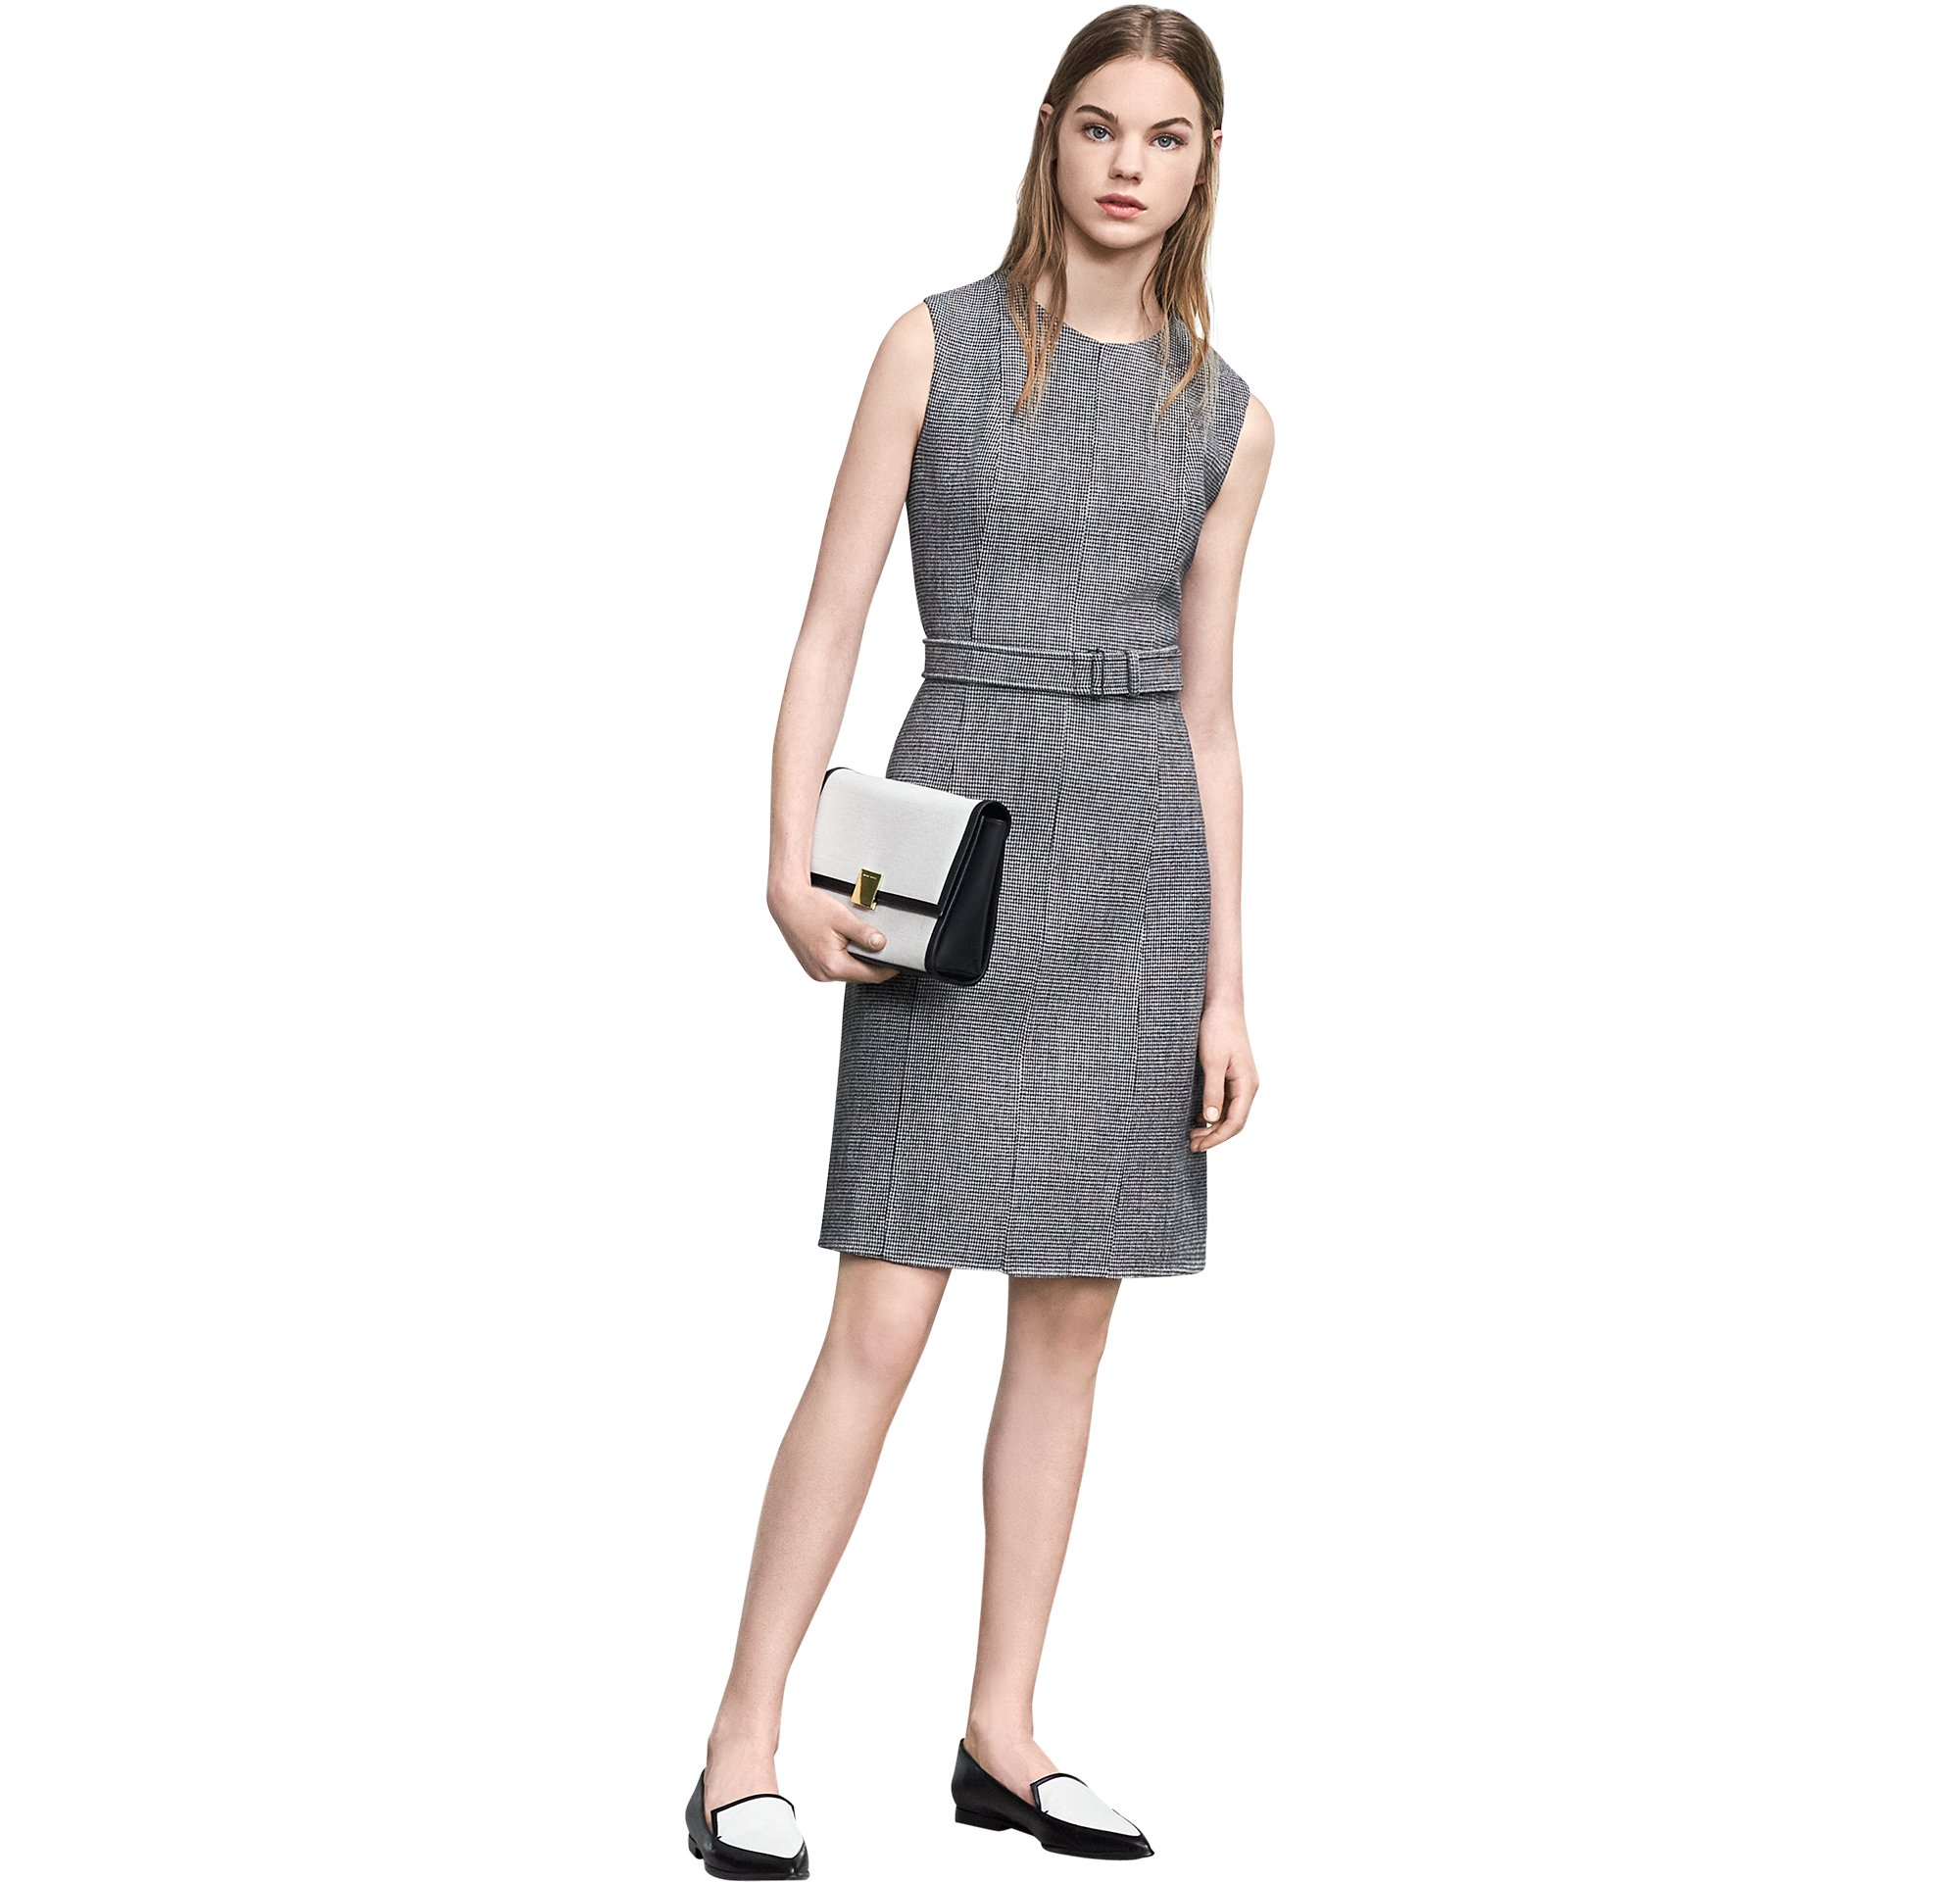 Grey dress with bag and shoes by BOSS